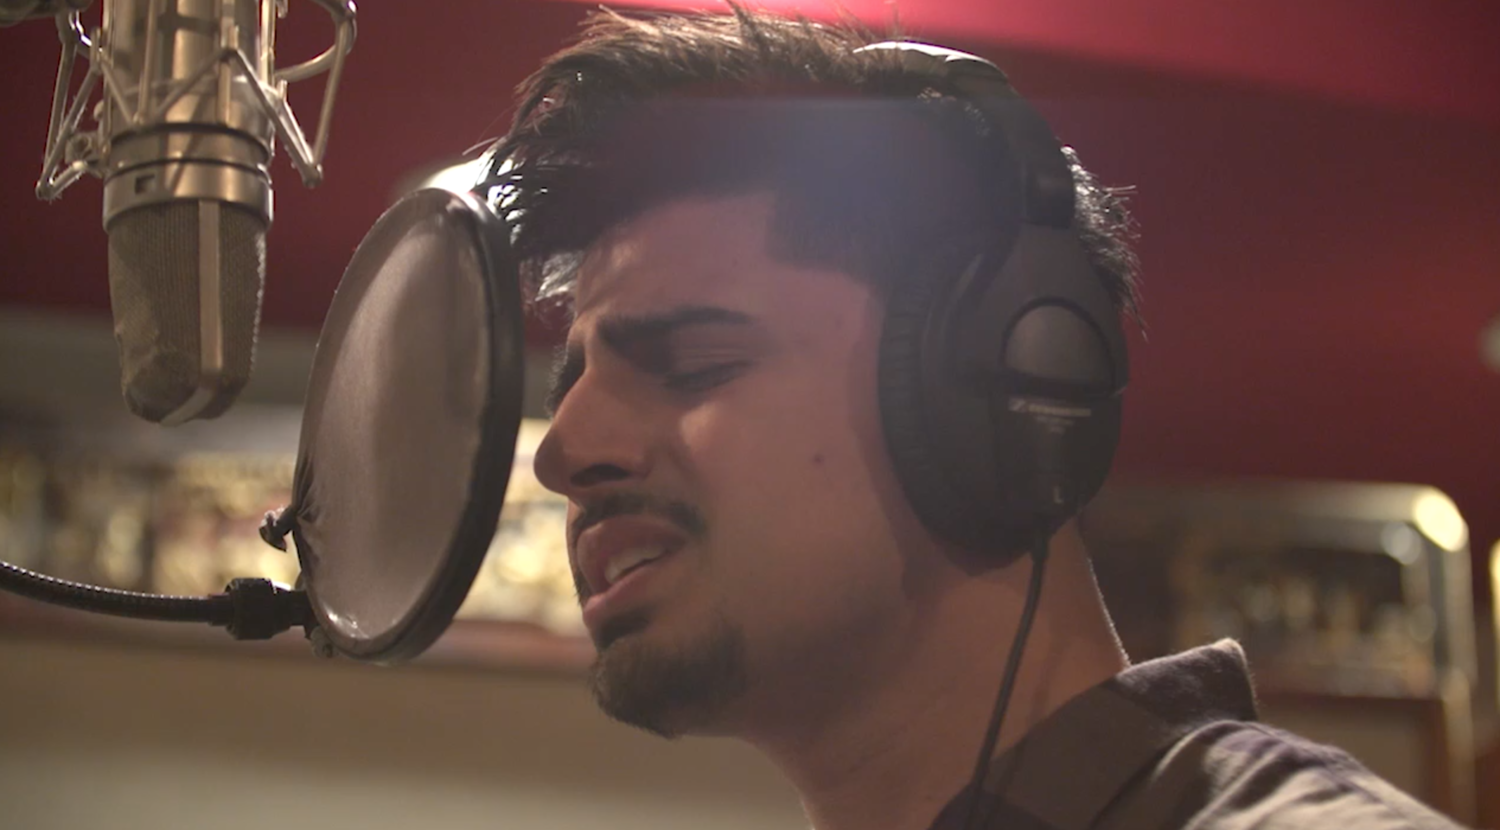 Singer-songwriter Alman Nusrat during filming at the Cutting Room studios in New York